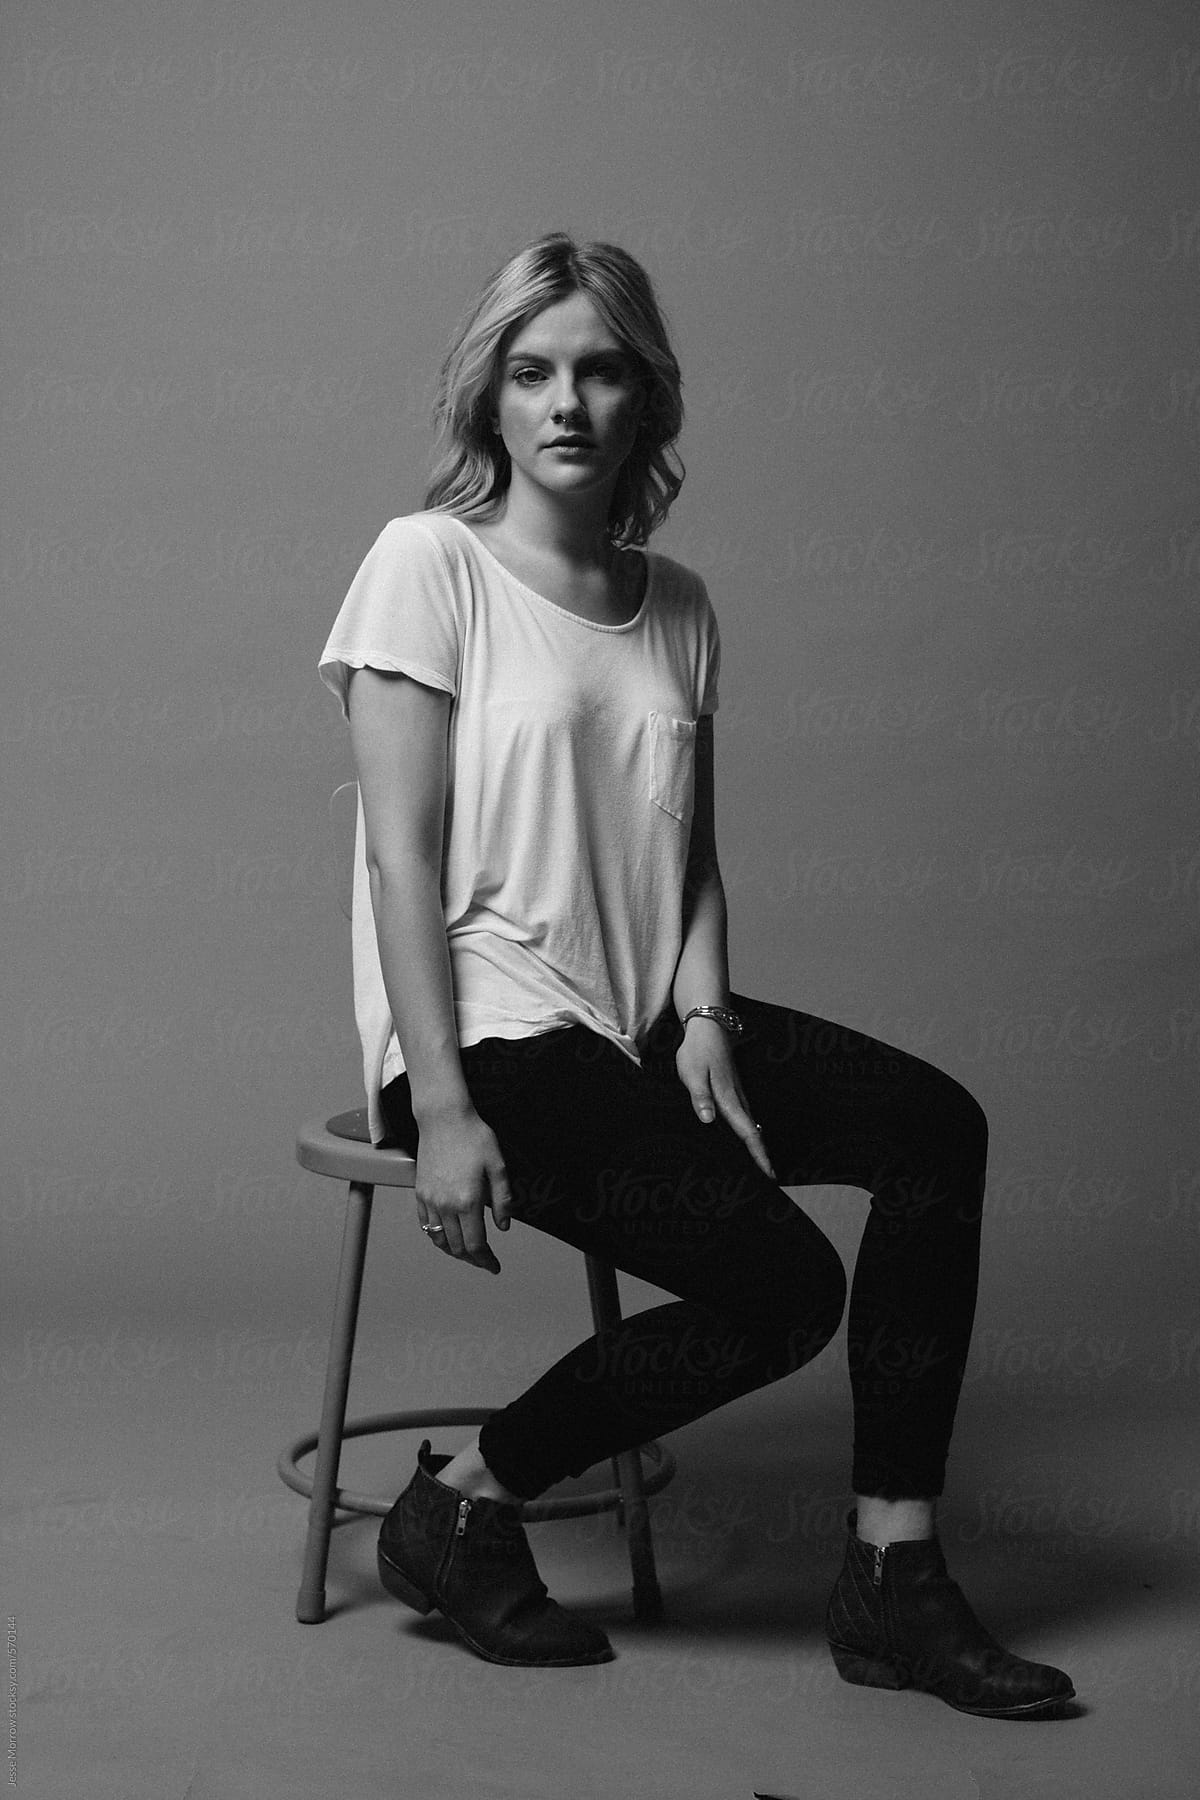 Black and white moody portrait of female in studio on stool by jesse morrow for stocksy